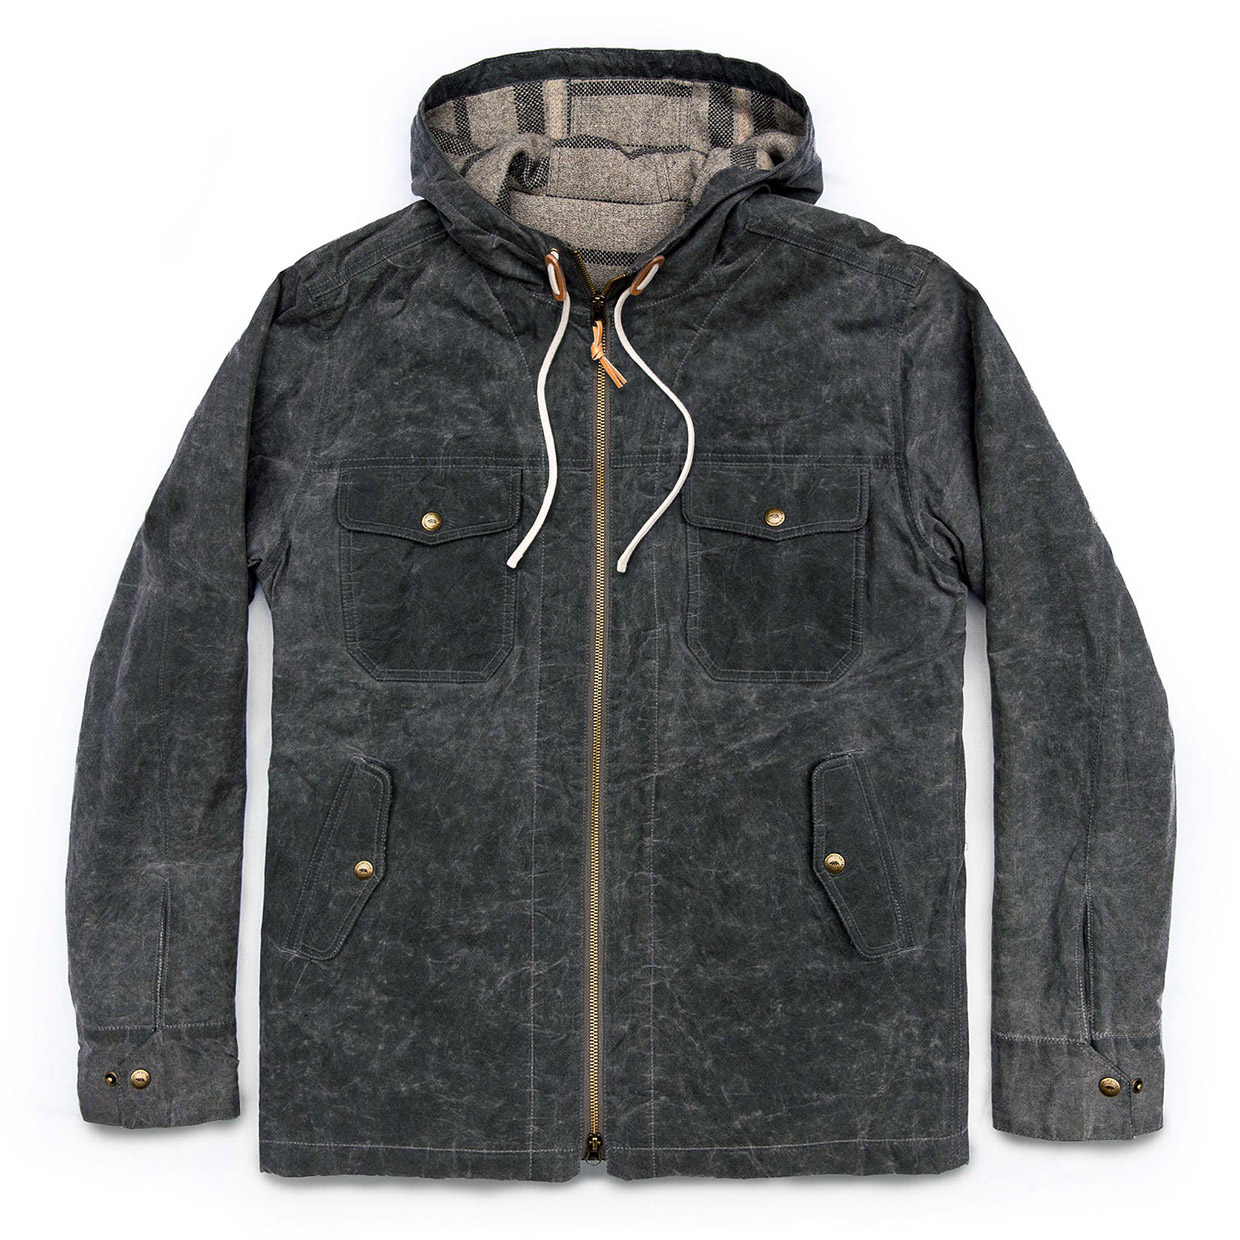 Taylor Stitch Winslow Jacket